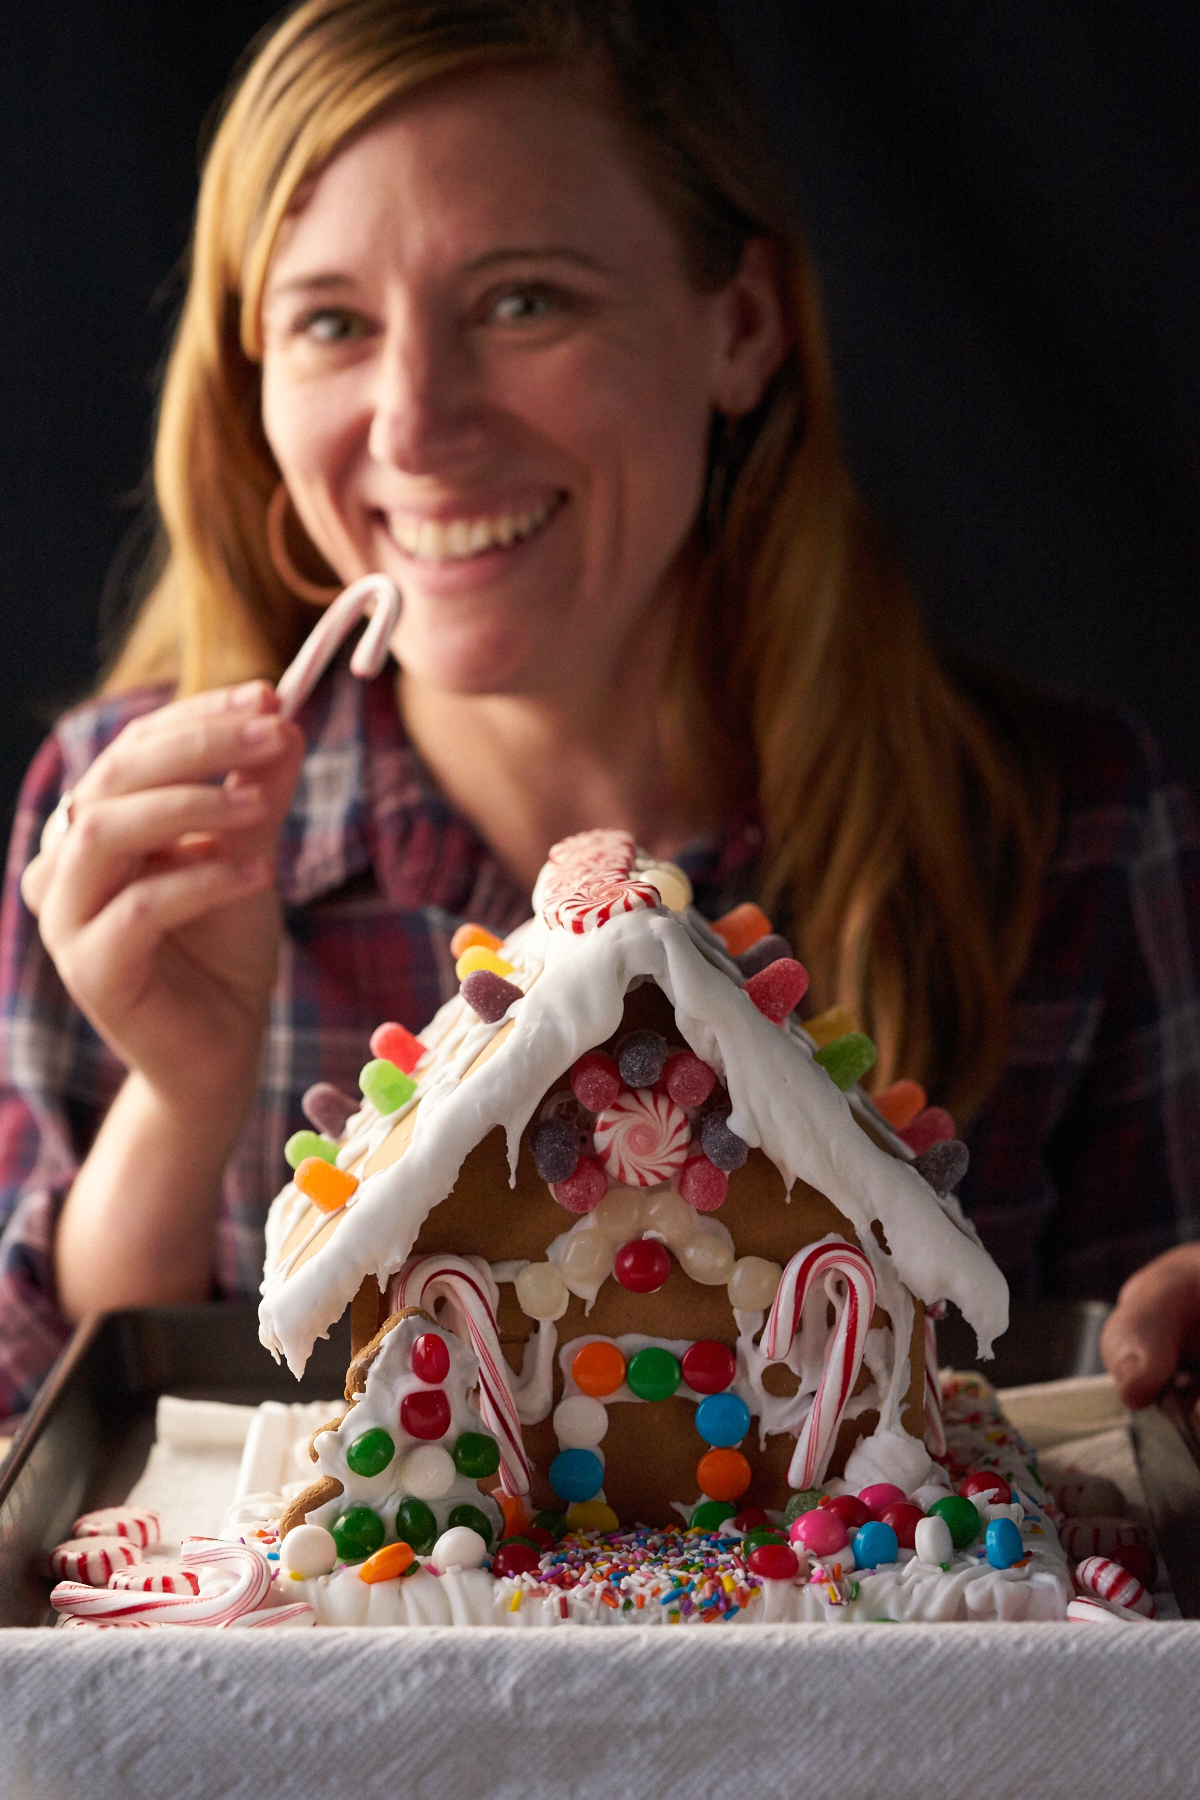 We started with our studio manager; Pamela, who made a gingerbread house because she shared many holiday seasons with her grandmother building and decorating them.